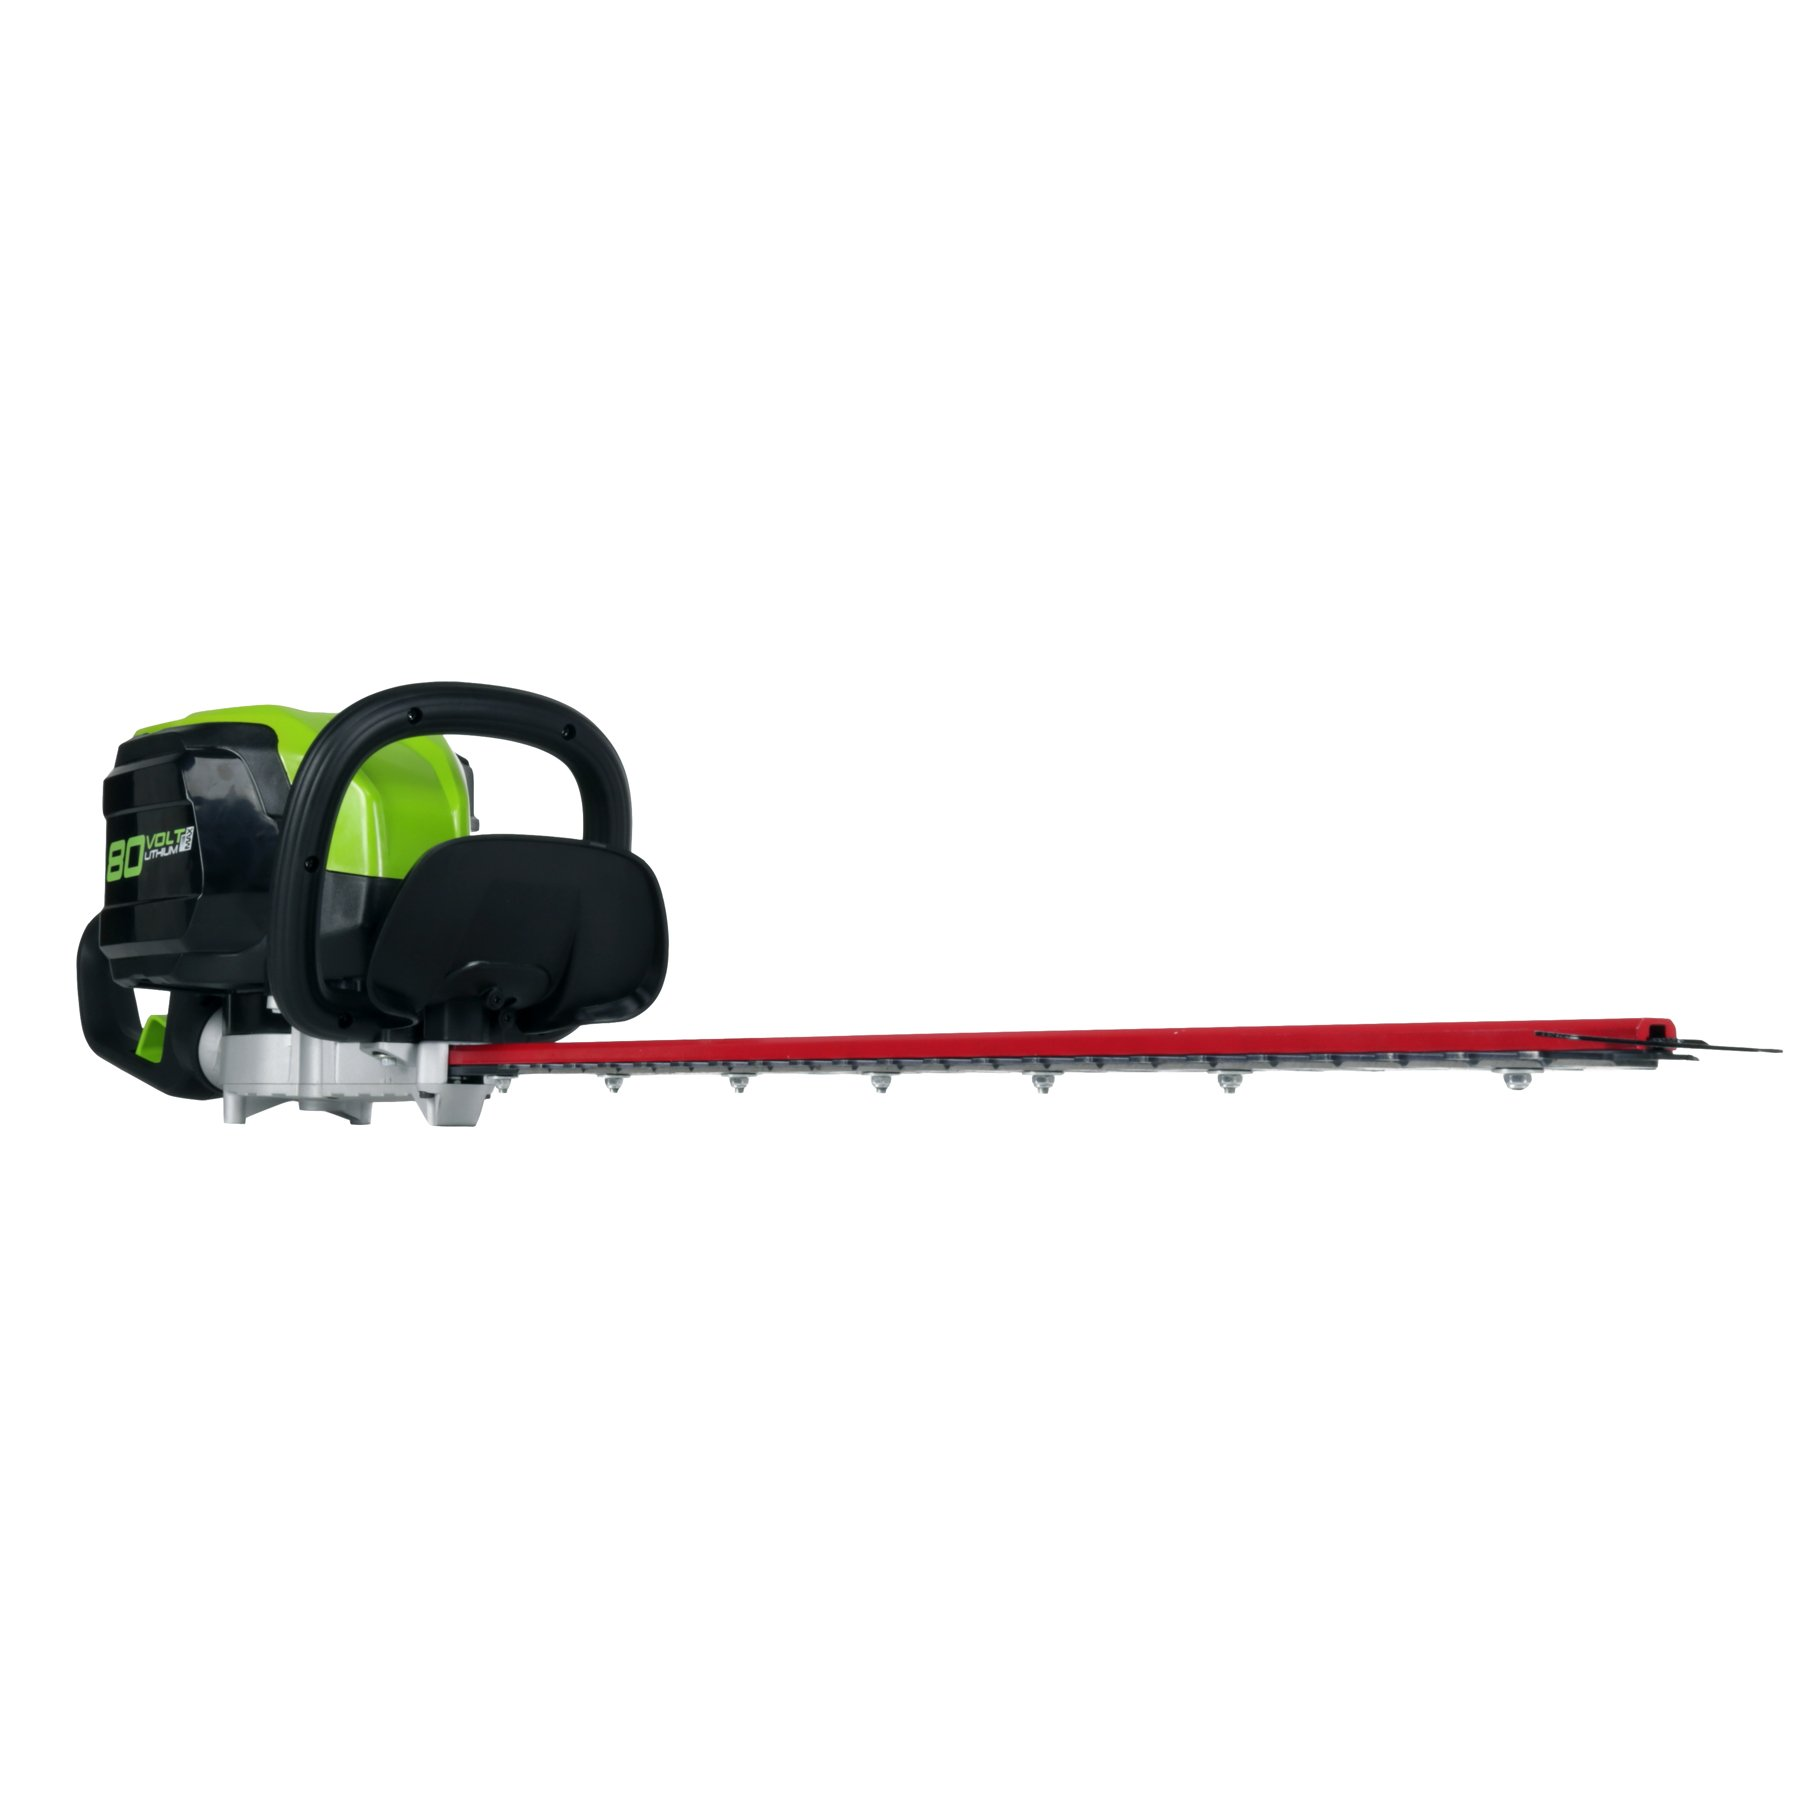 GreenWorks Pro 80V 26-Inch Cordless Hedge Trimmer, Battery Not Included, GHT80320